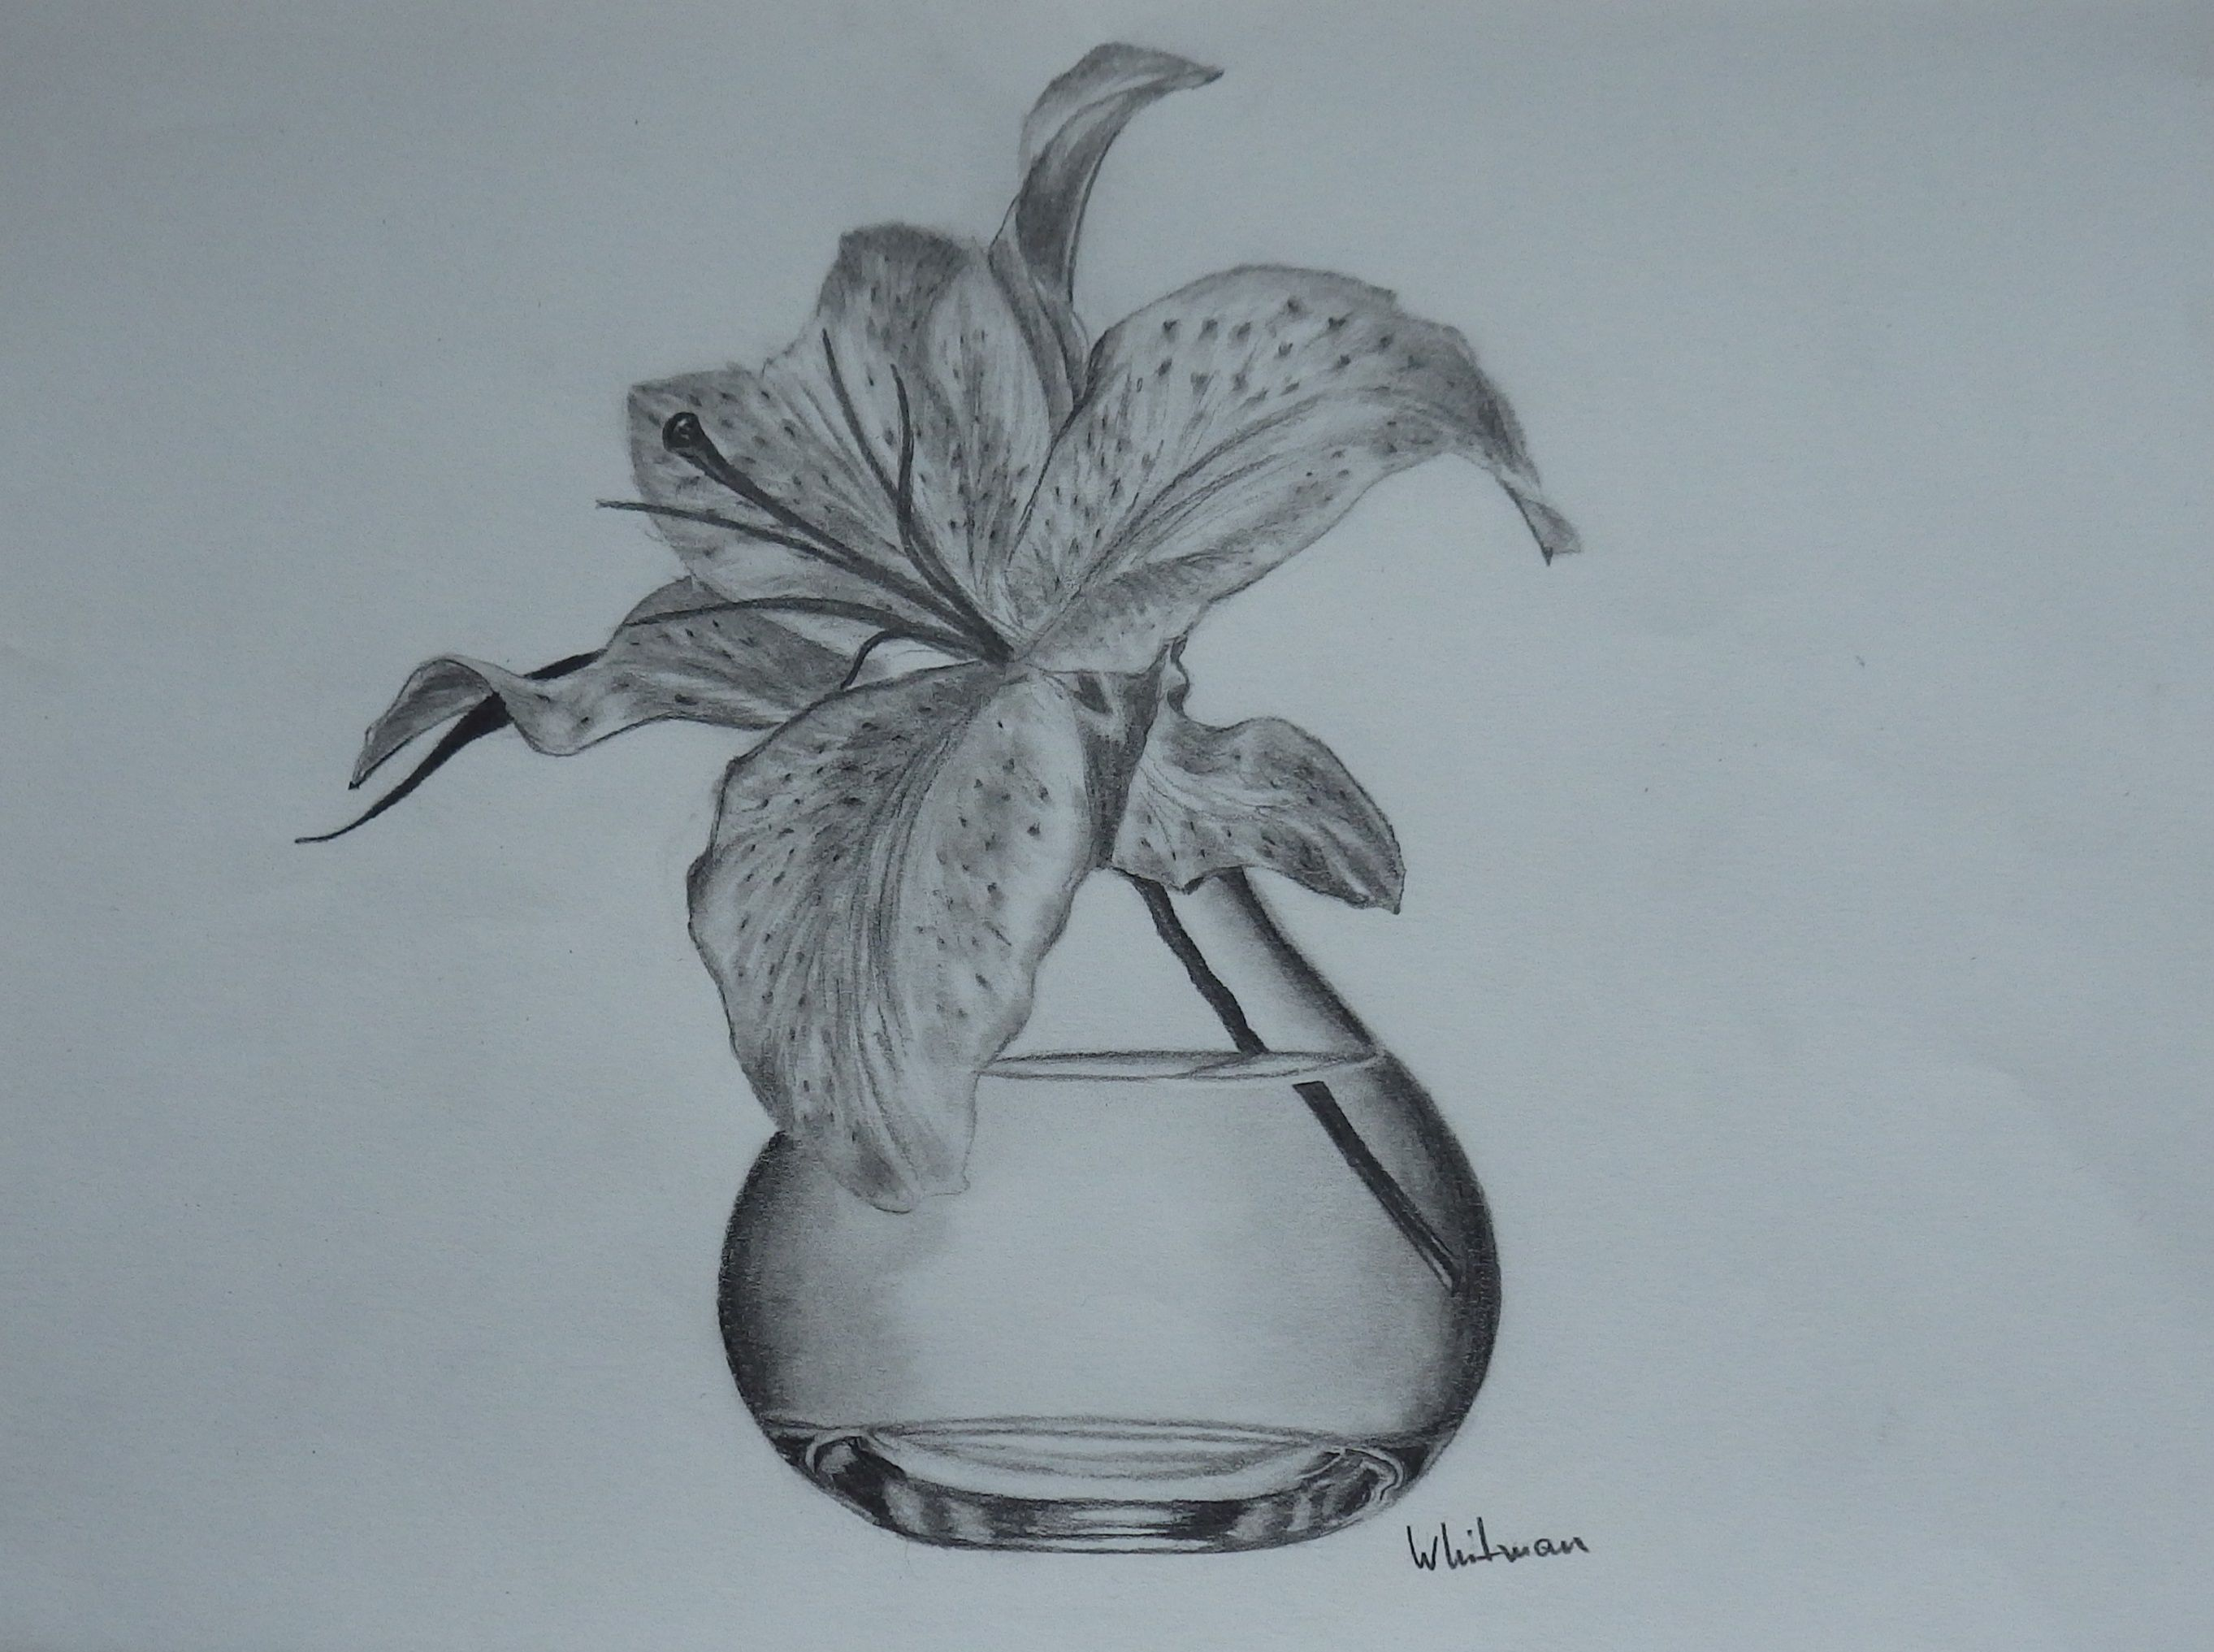 90 Lilly in a vase, still life sketch. Original art